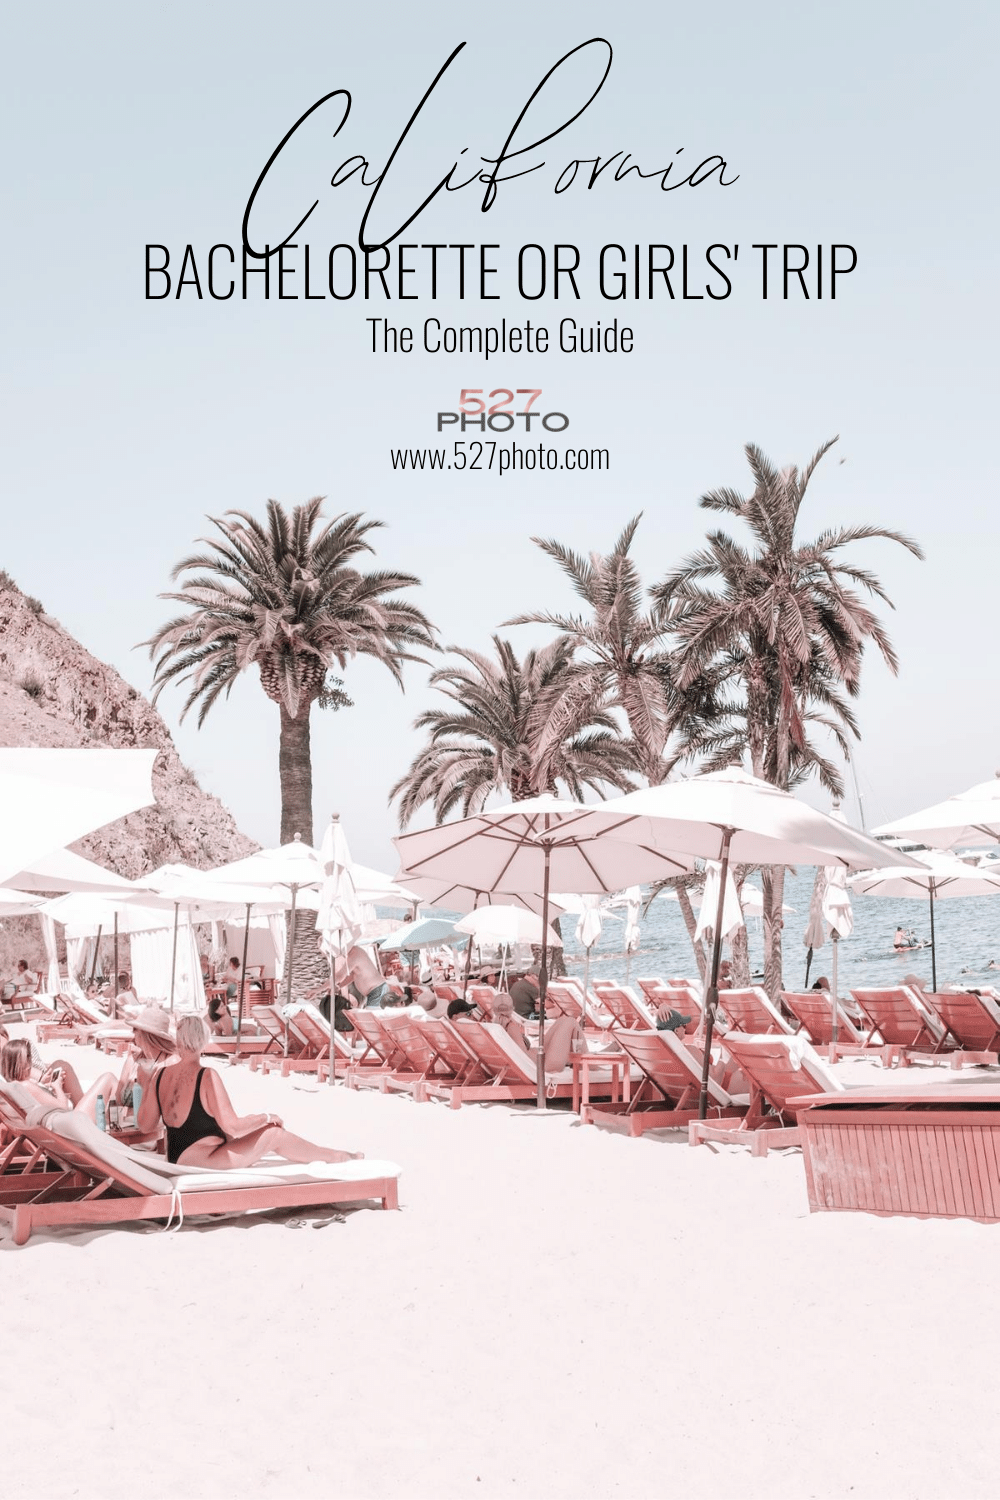 Best bachelorette party and girls trip destinations